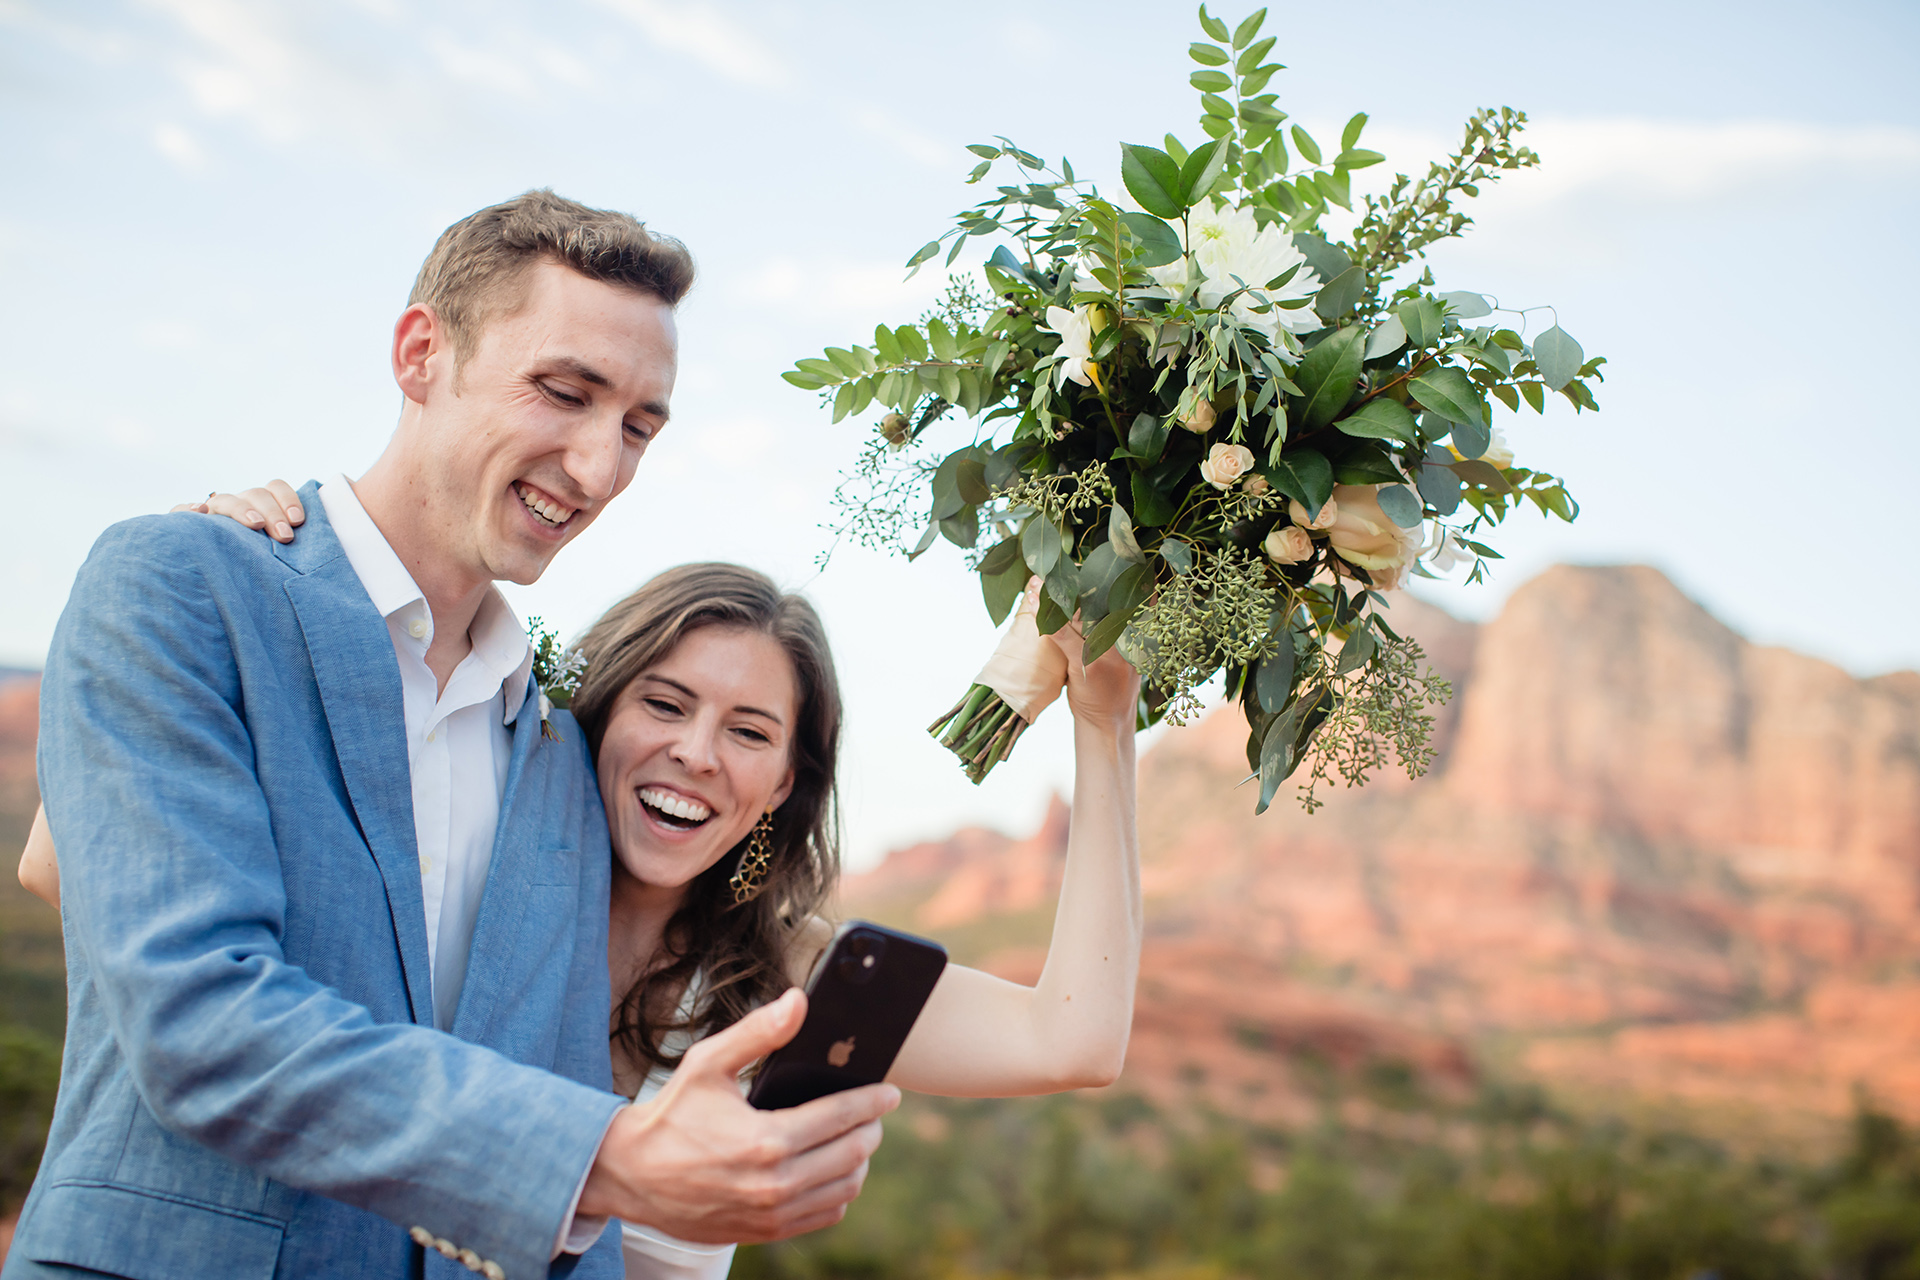 Sedona Wedding Photography & Elopements | The couple video chat with family members and friends immediately after the ceremony